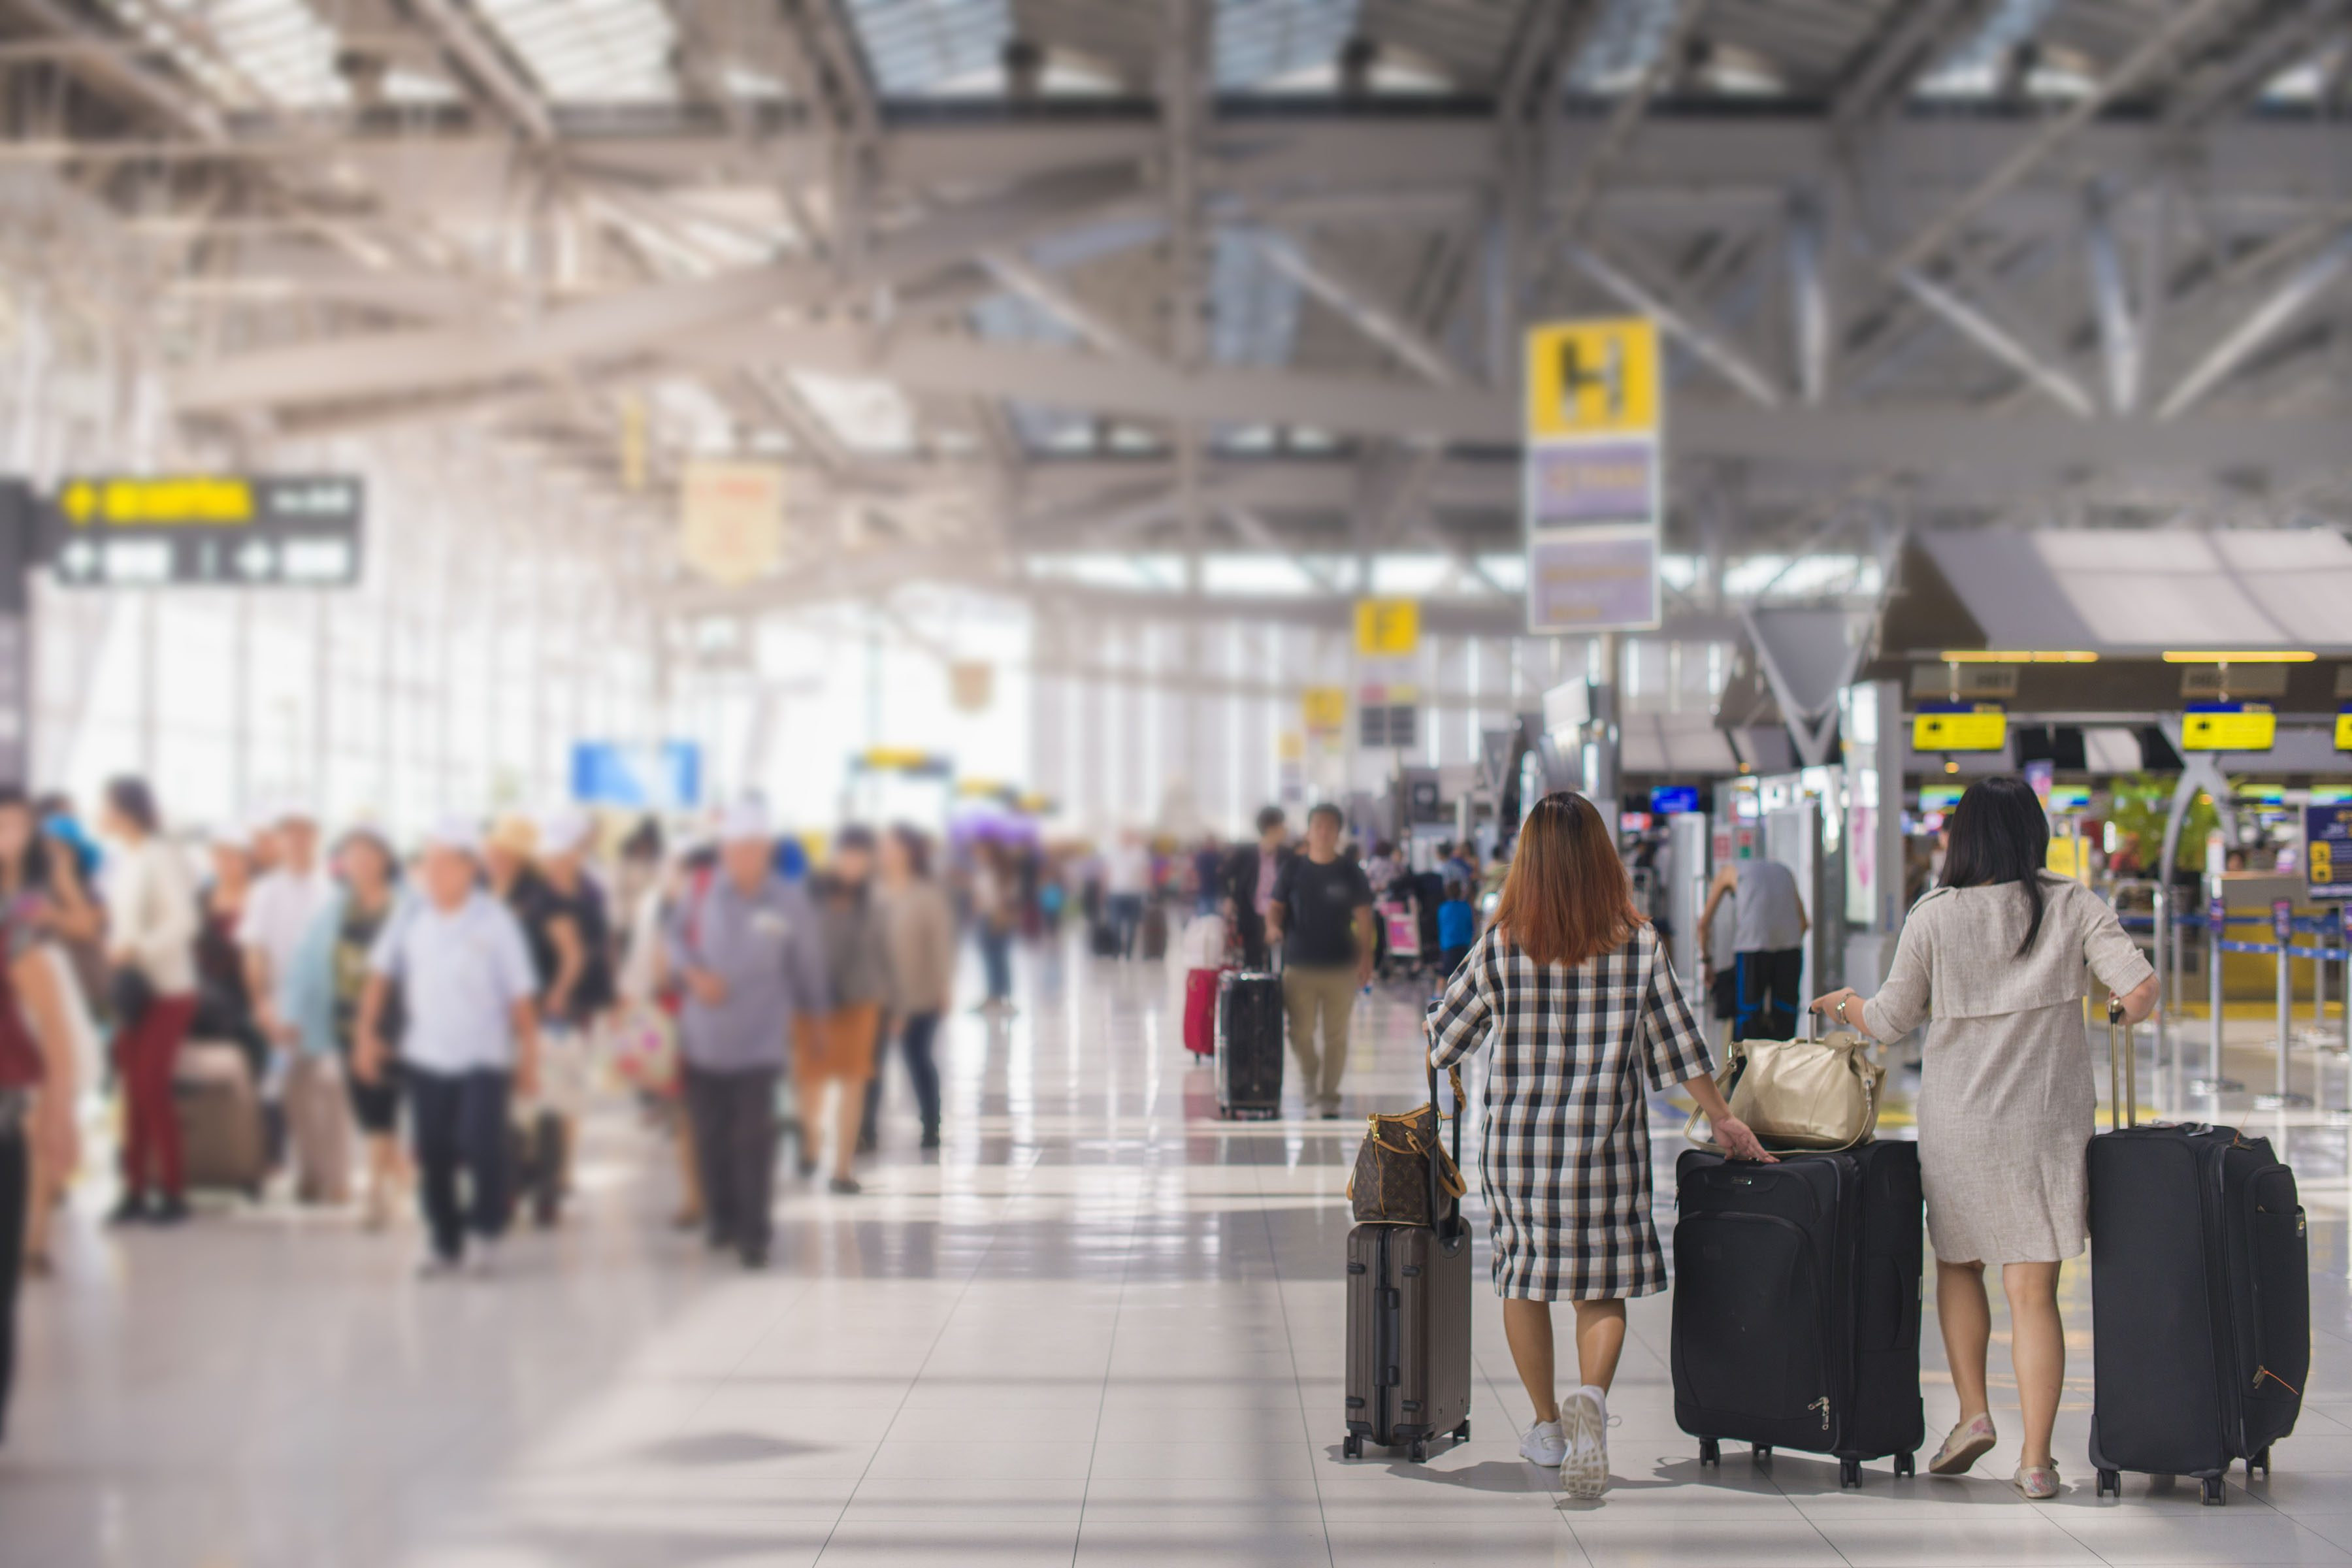 Cash For Cars Dallas >> 5 Clever and Hassle-Free Airport Travel Tips